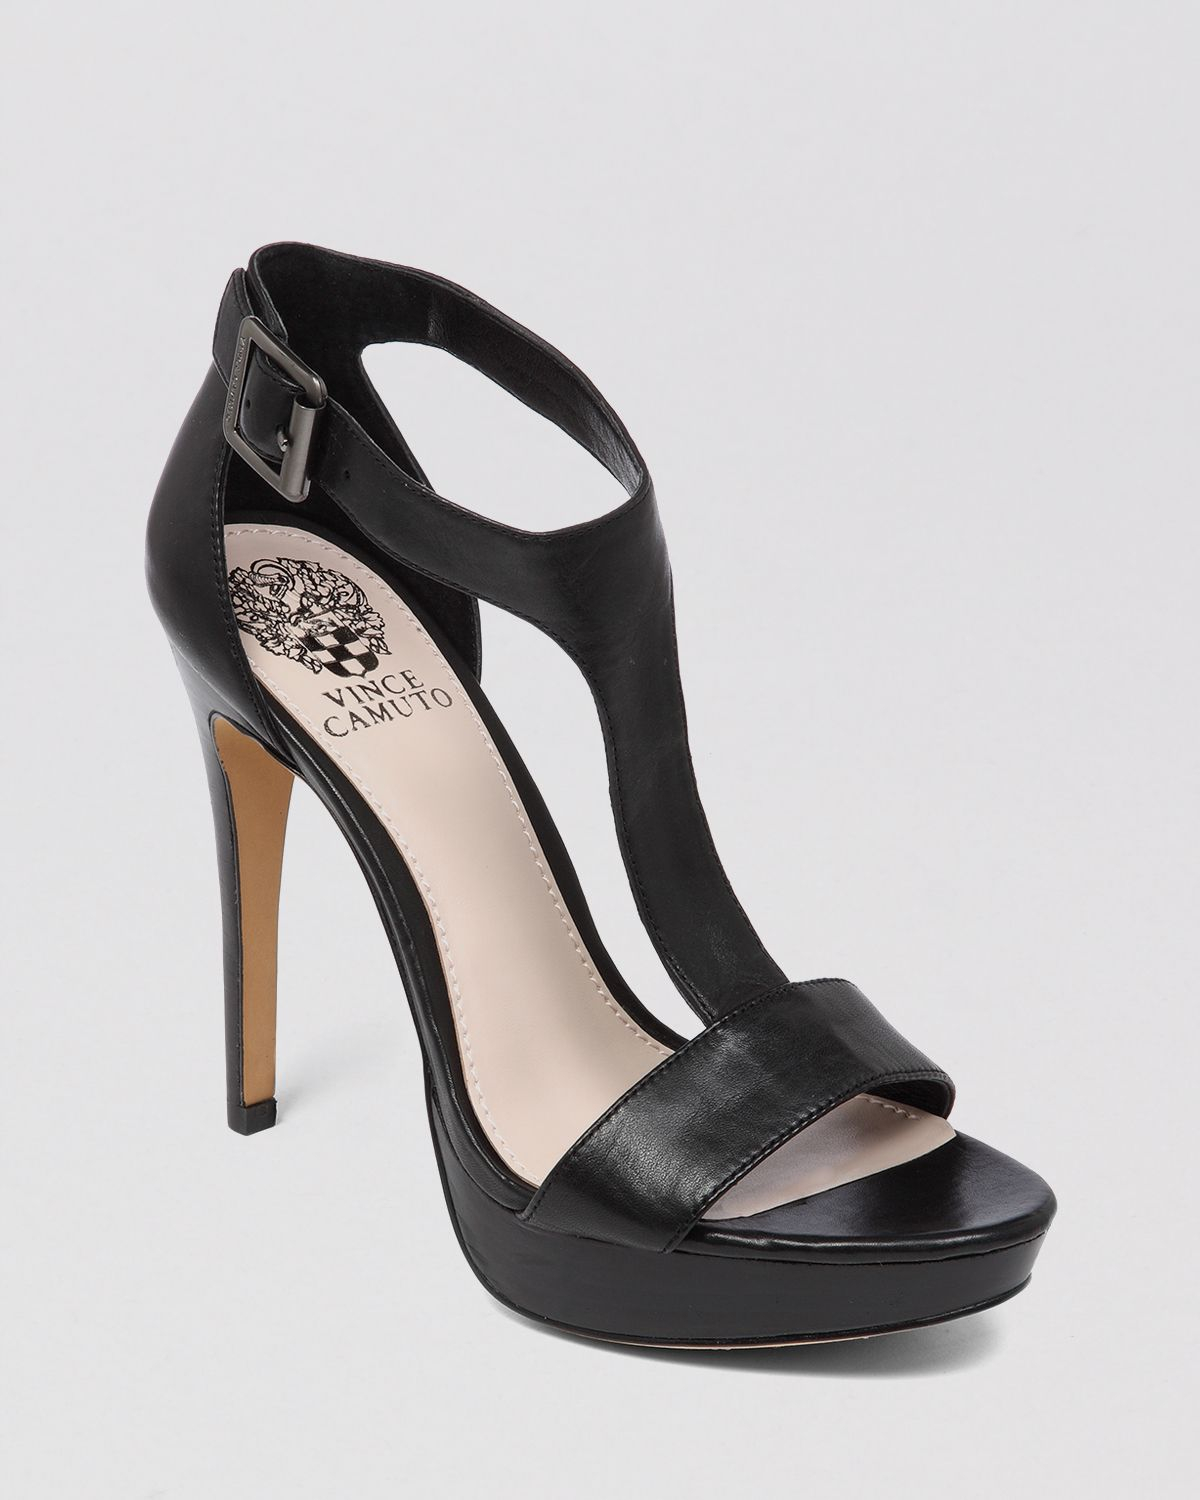 Vince camuto Open Toe Platform Sandals Jerimya High Heel in Black